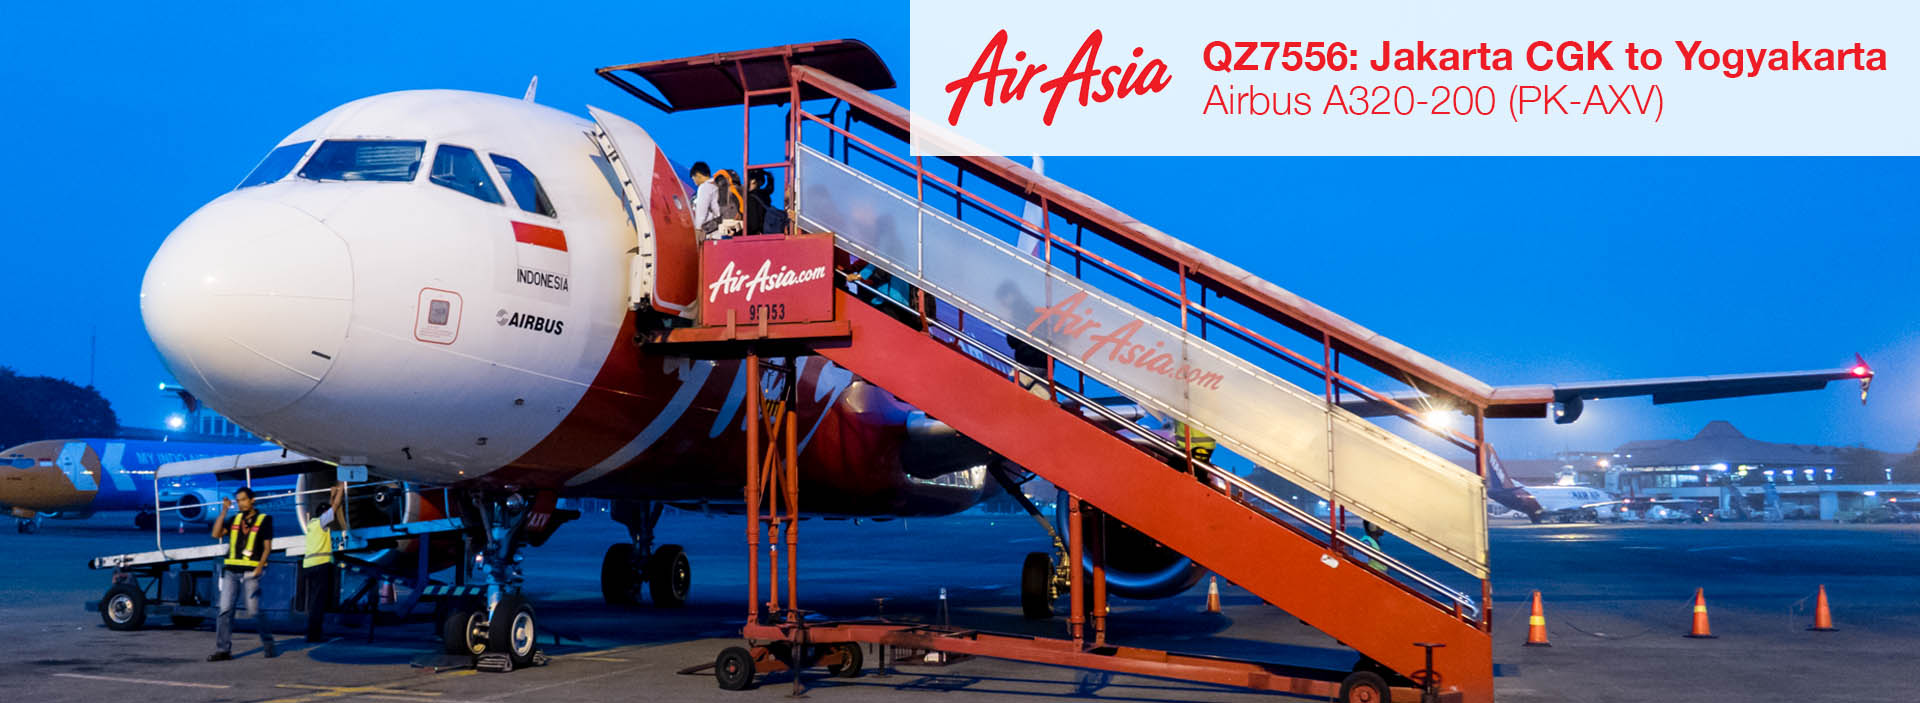 Flight Report Indonesia Airasia A320 From Jakarta Cgk To